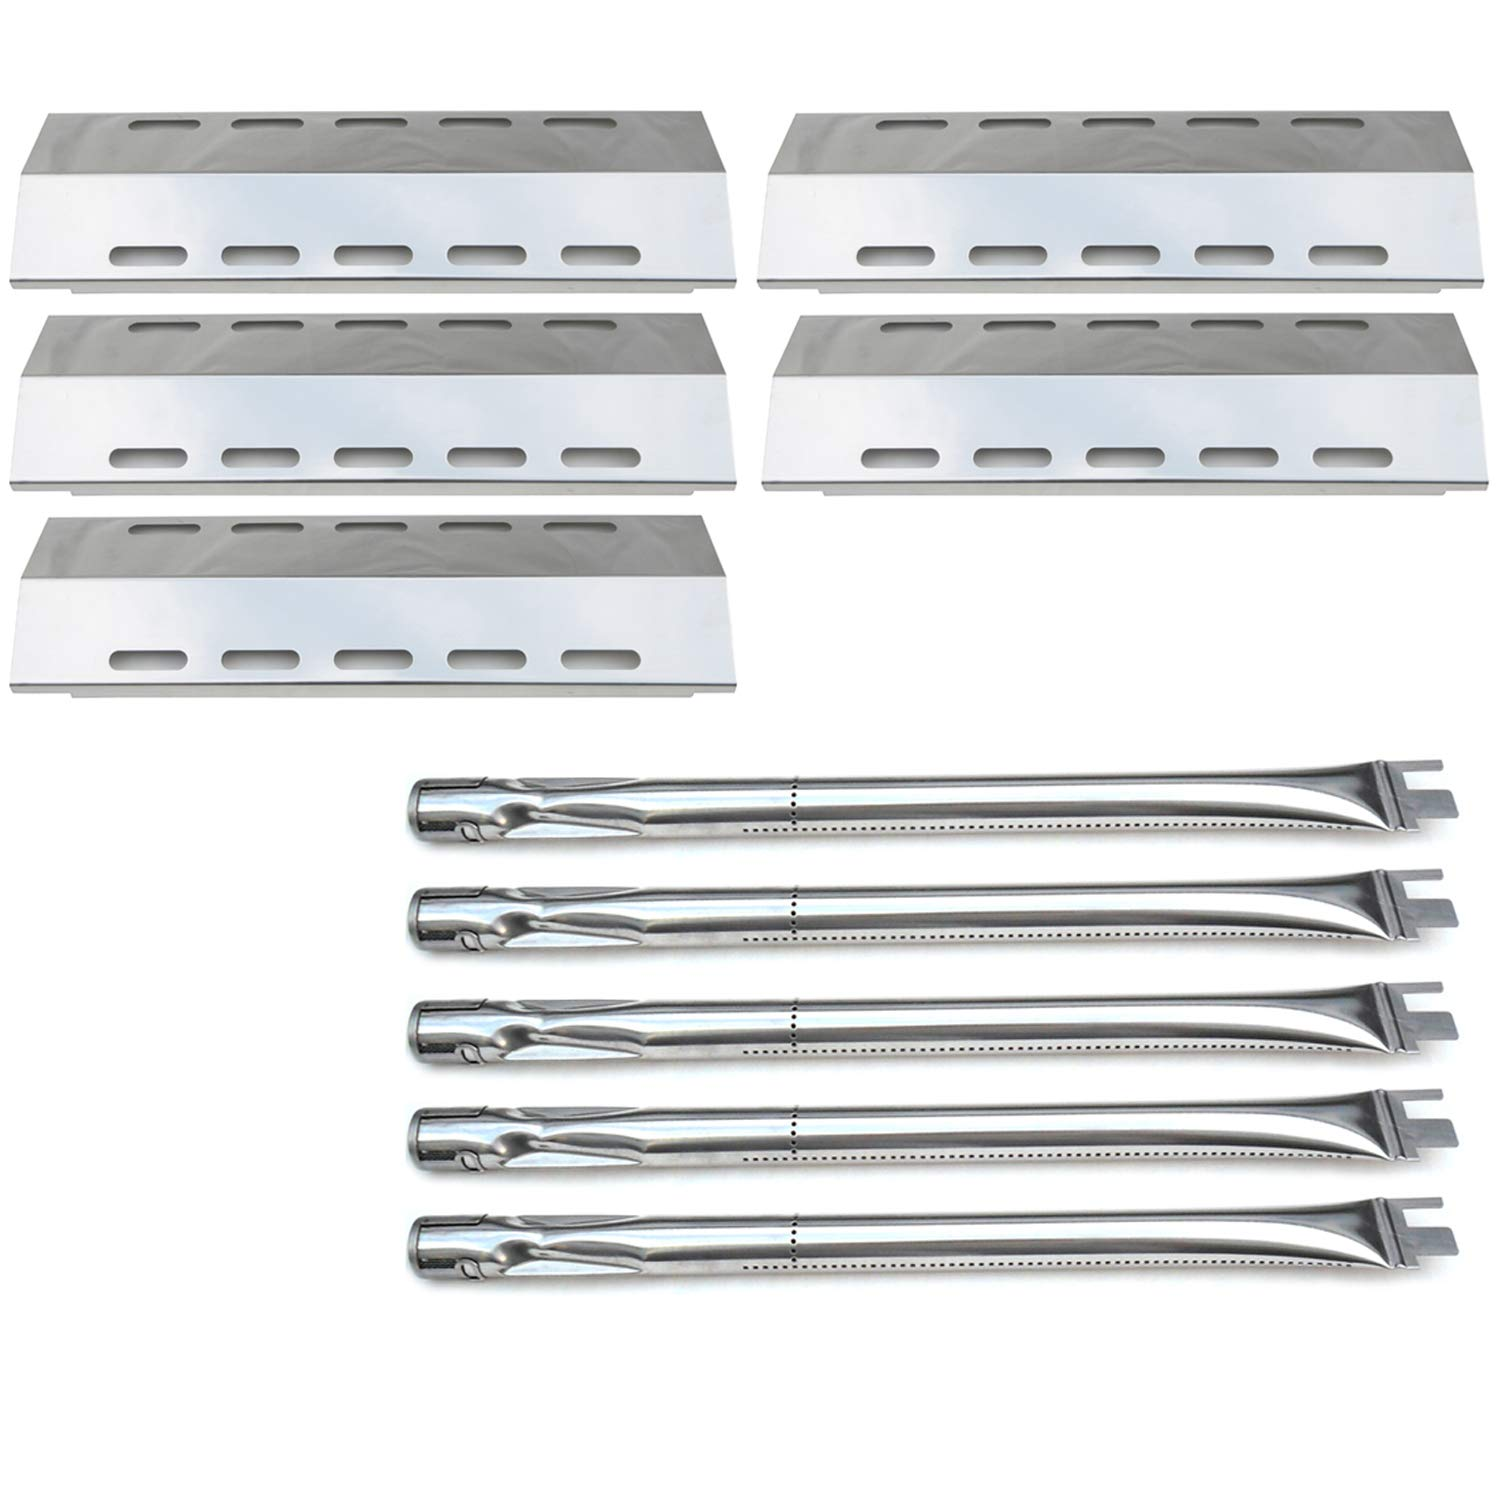 Direct store Parts Kit DG257 Replacement Ducane 5 Burner 30500701/30500097 Gas Grill Repair Kit Stainless Steel Burners & Heat Plates by Direct store